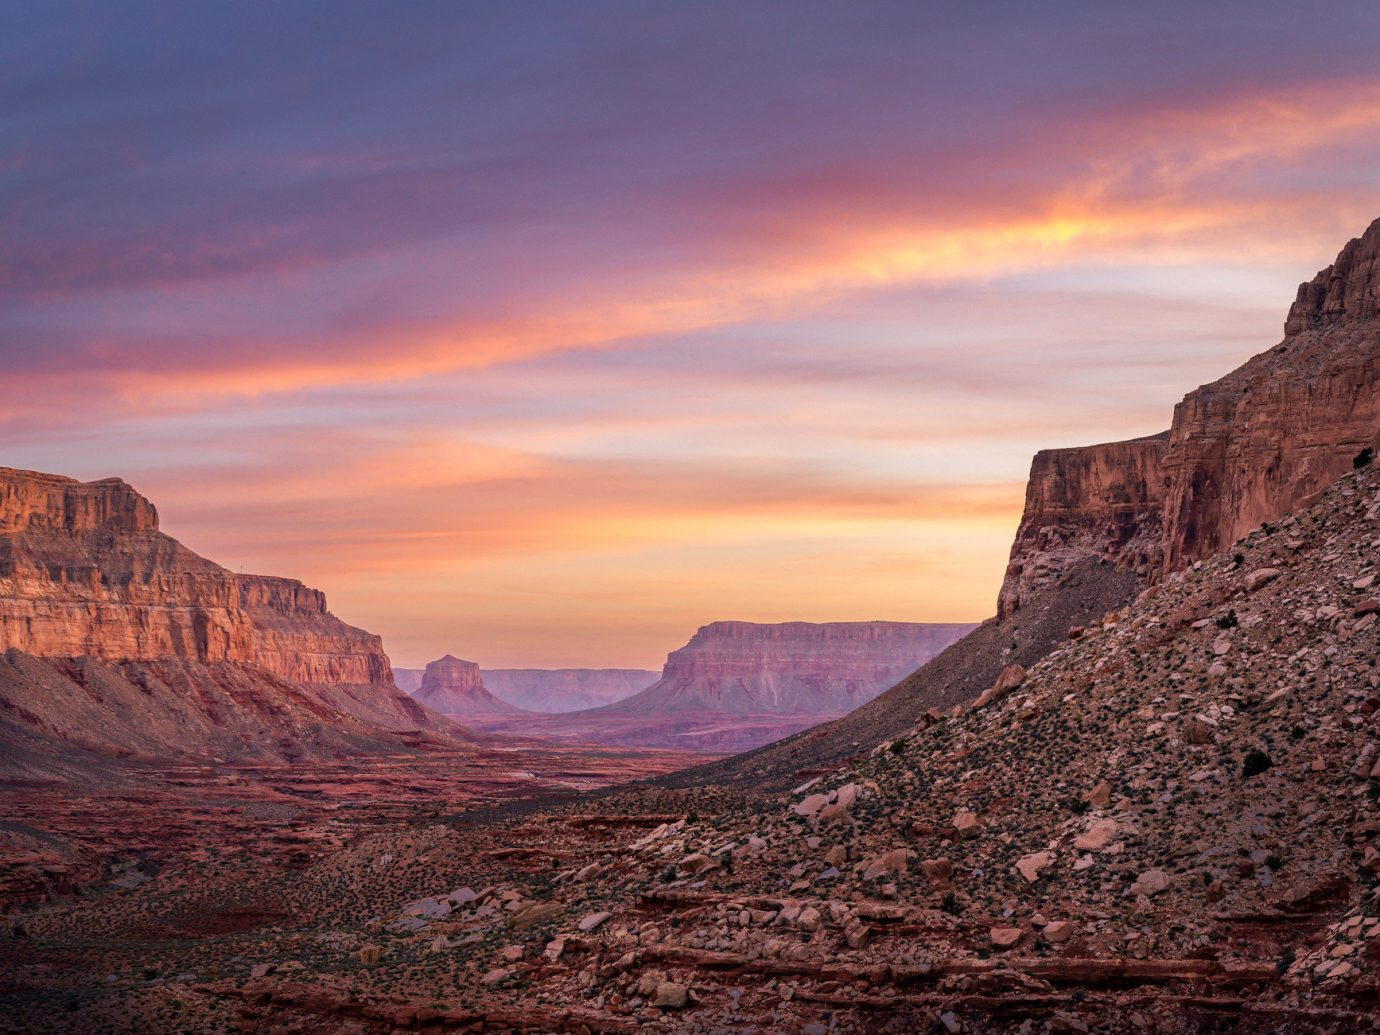 Family Travel National Parks Outdoors + Adventure Trip Ideas valley canyon mountain outdoor sky Nature mountainous landforms geographical feature landform butte Sunset sunrise badlands rock Desert dawn landscape wadi plateau cliff dusk terrain formation geology lone dry hillside